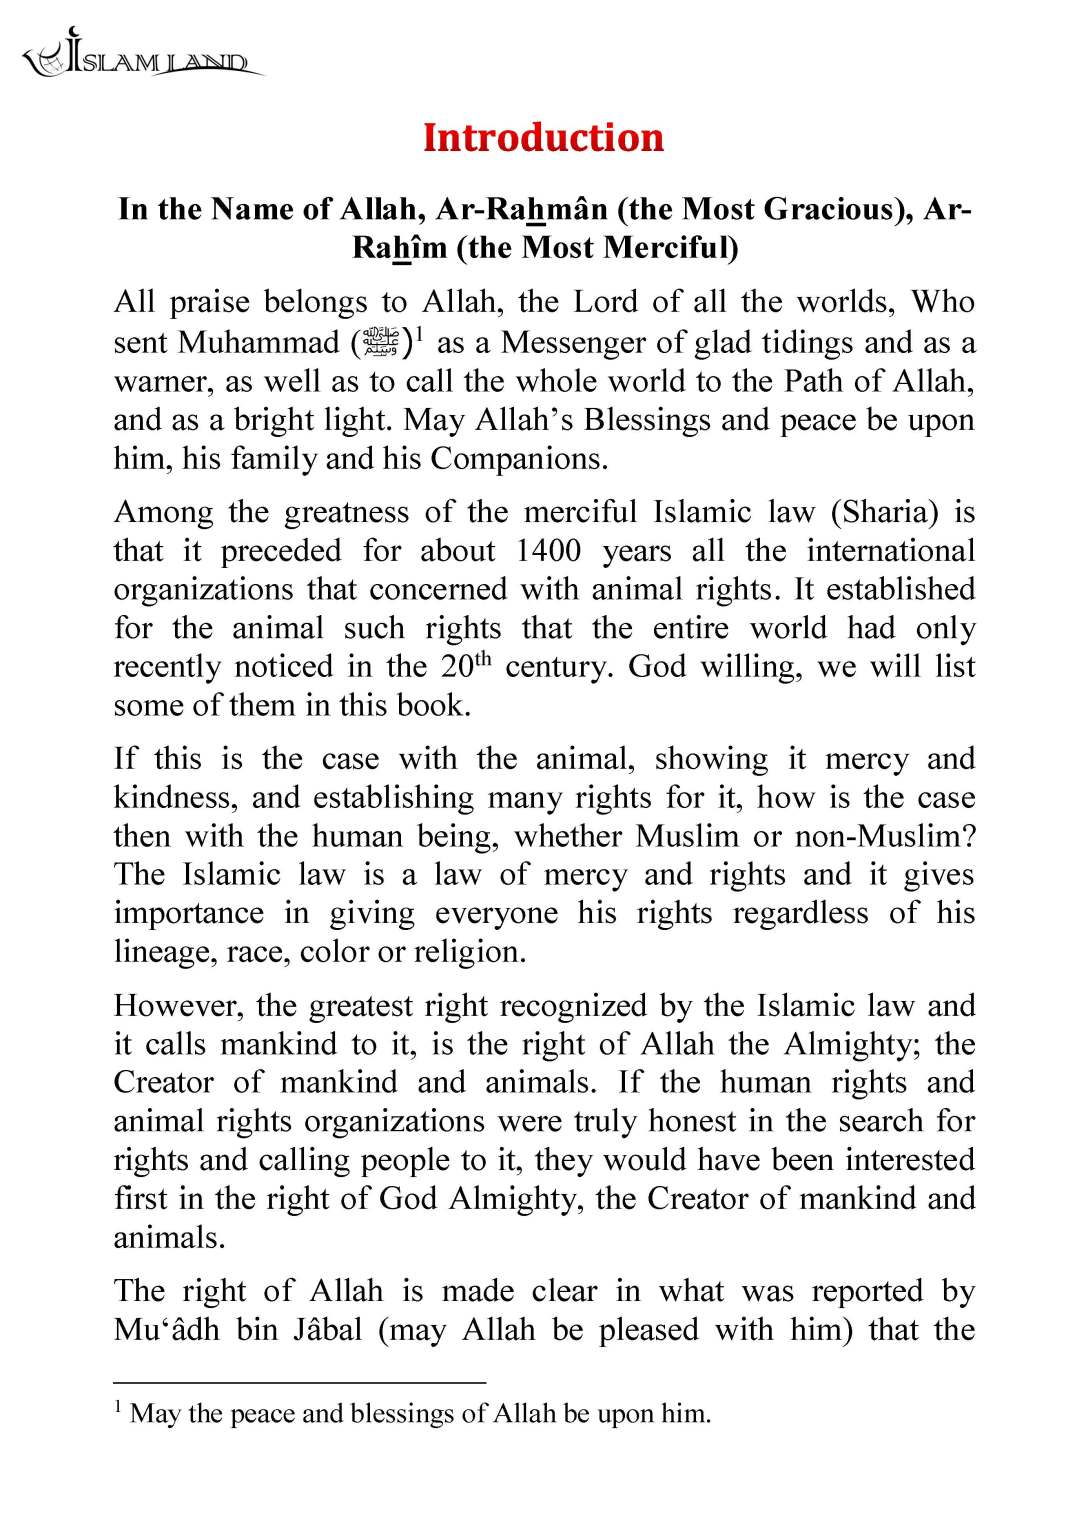 en_ANIMAL_RIGHTS_IN_ISLAMIC_CHRISTIAN_AND_JEWISH_SHARIA_LAW_Page_04